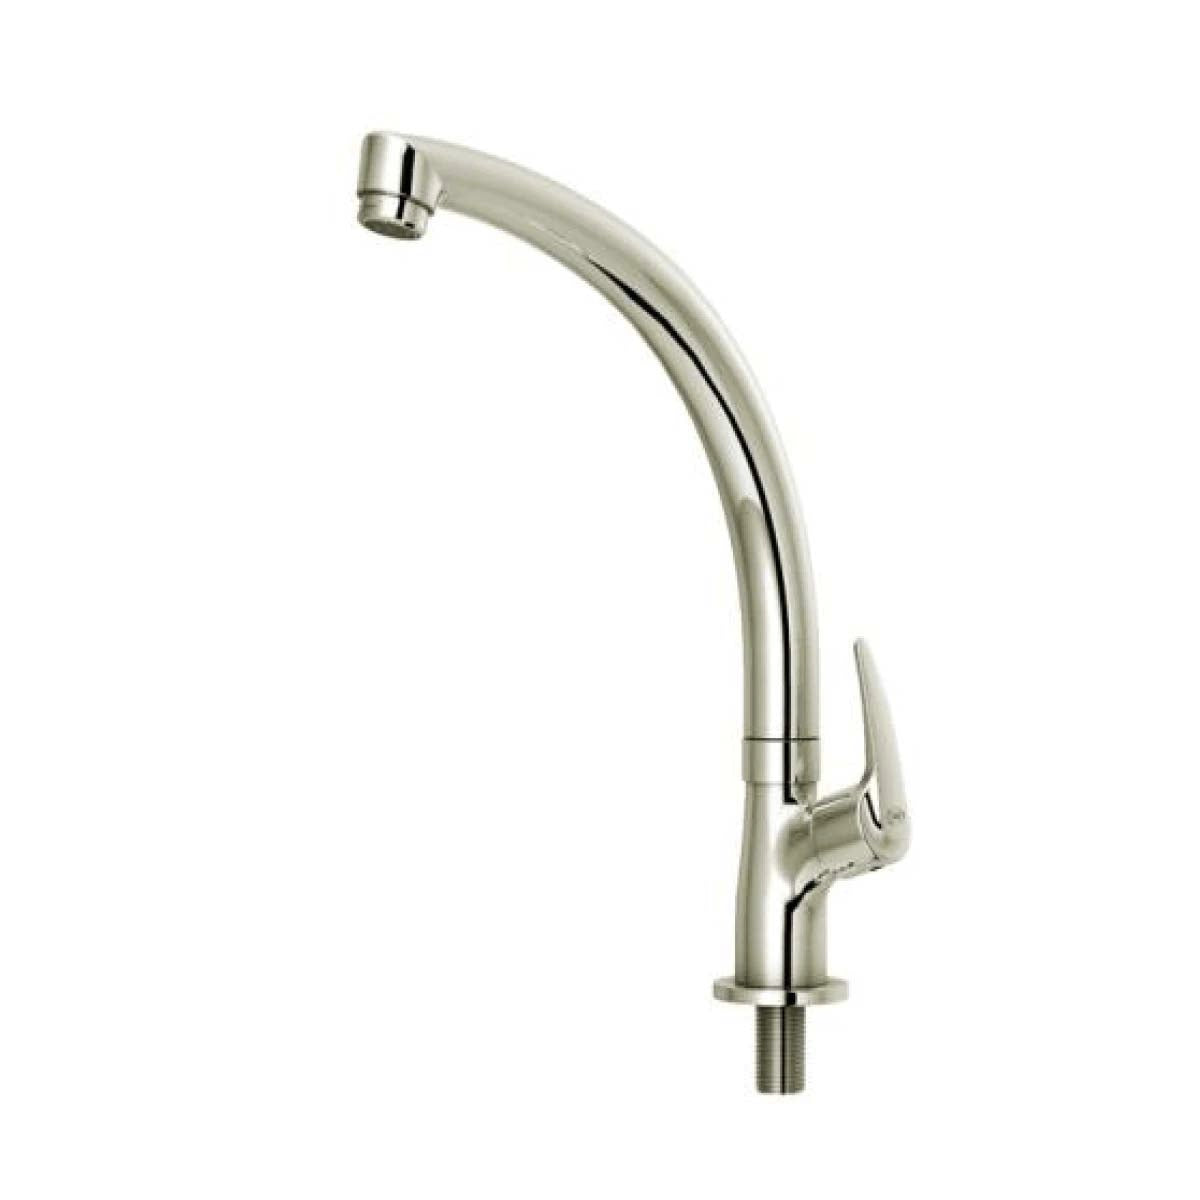 AER Cold Brass Table-Mount Kitchen Faucet (VCR 01B)